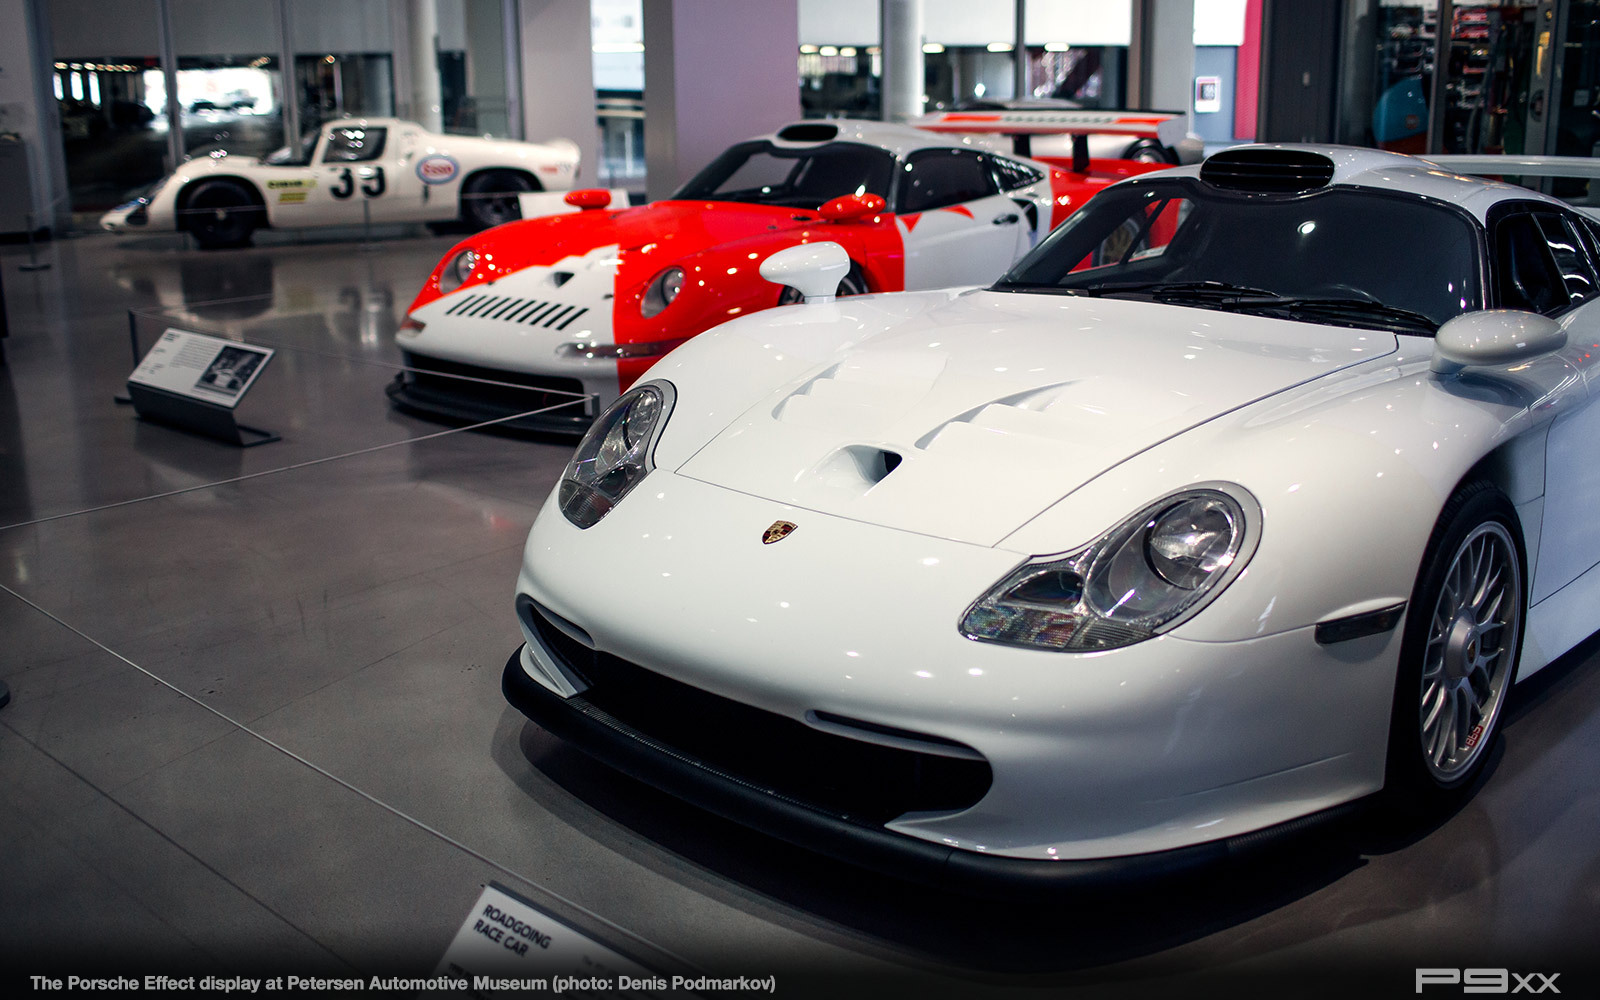 2018-the-porsche-effect-petersen-museum-dpod-361